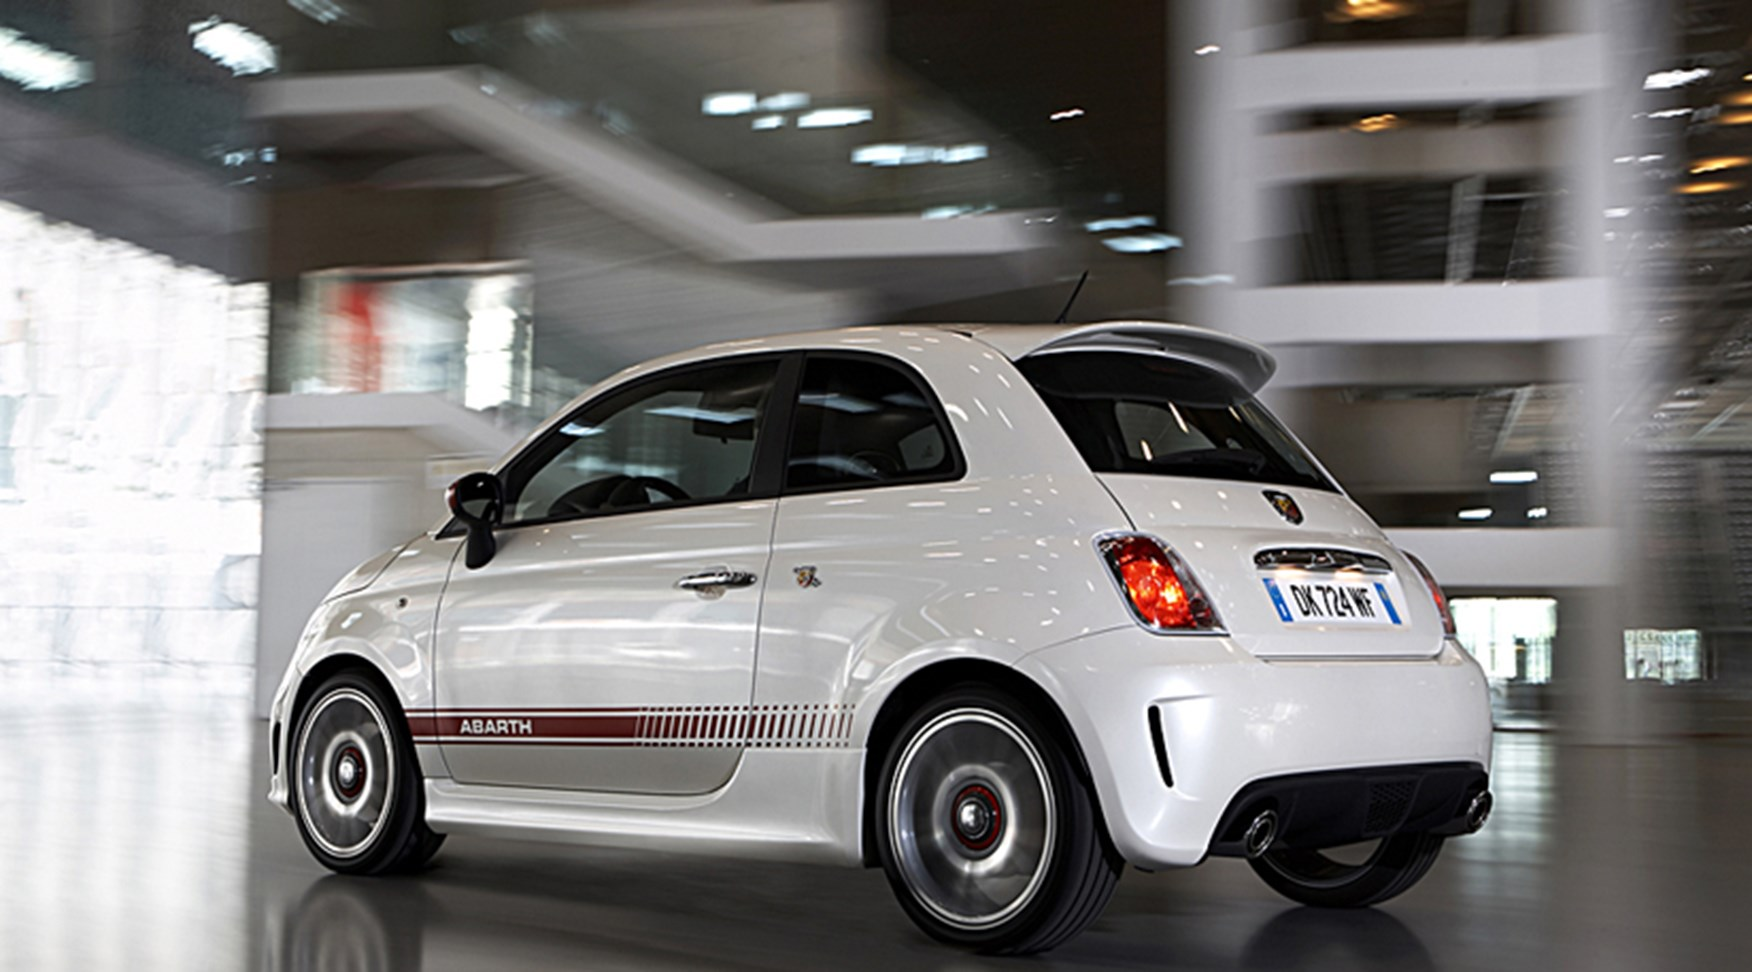 Fiat 500 Abarth 2008 Car Review And Video By Car Magazine